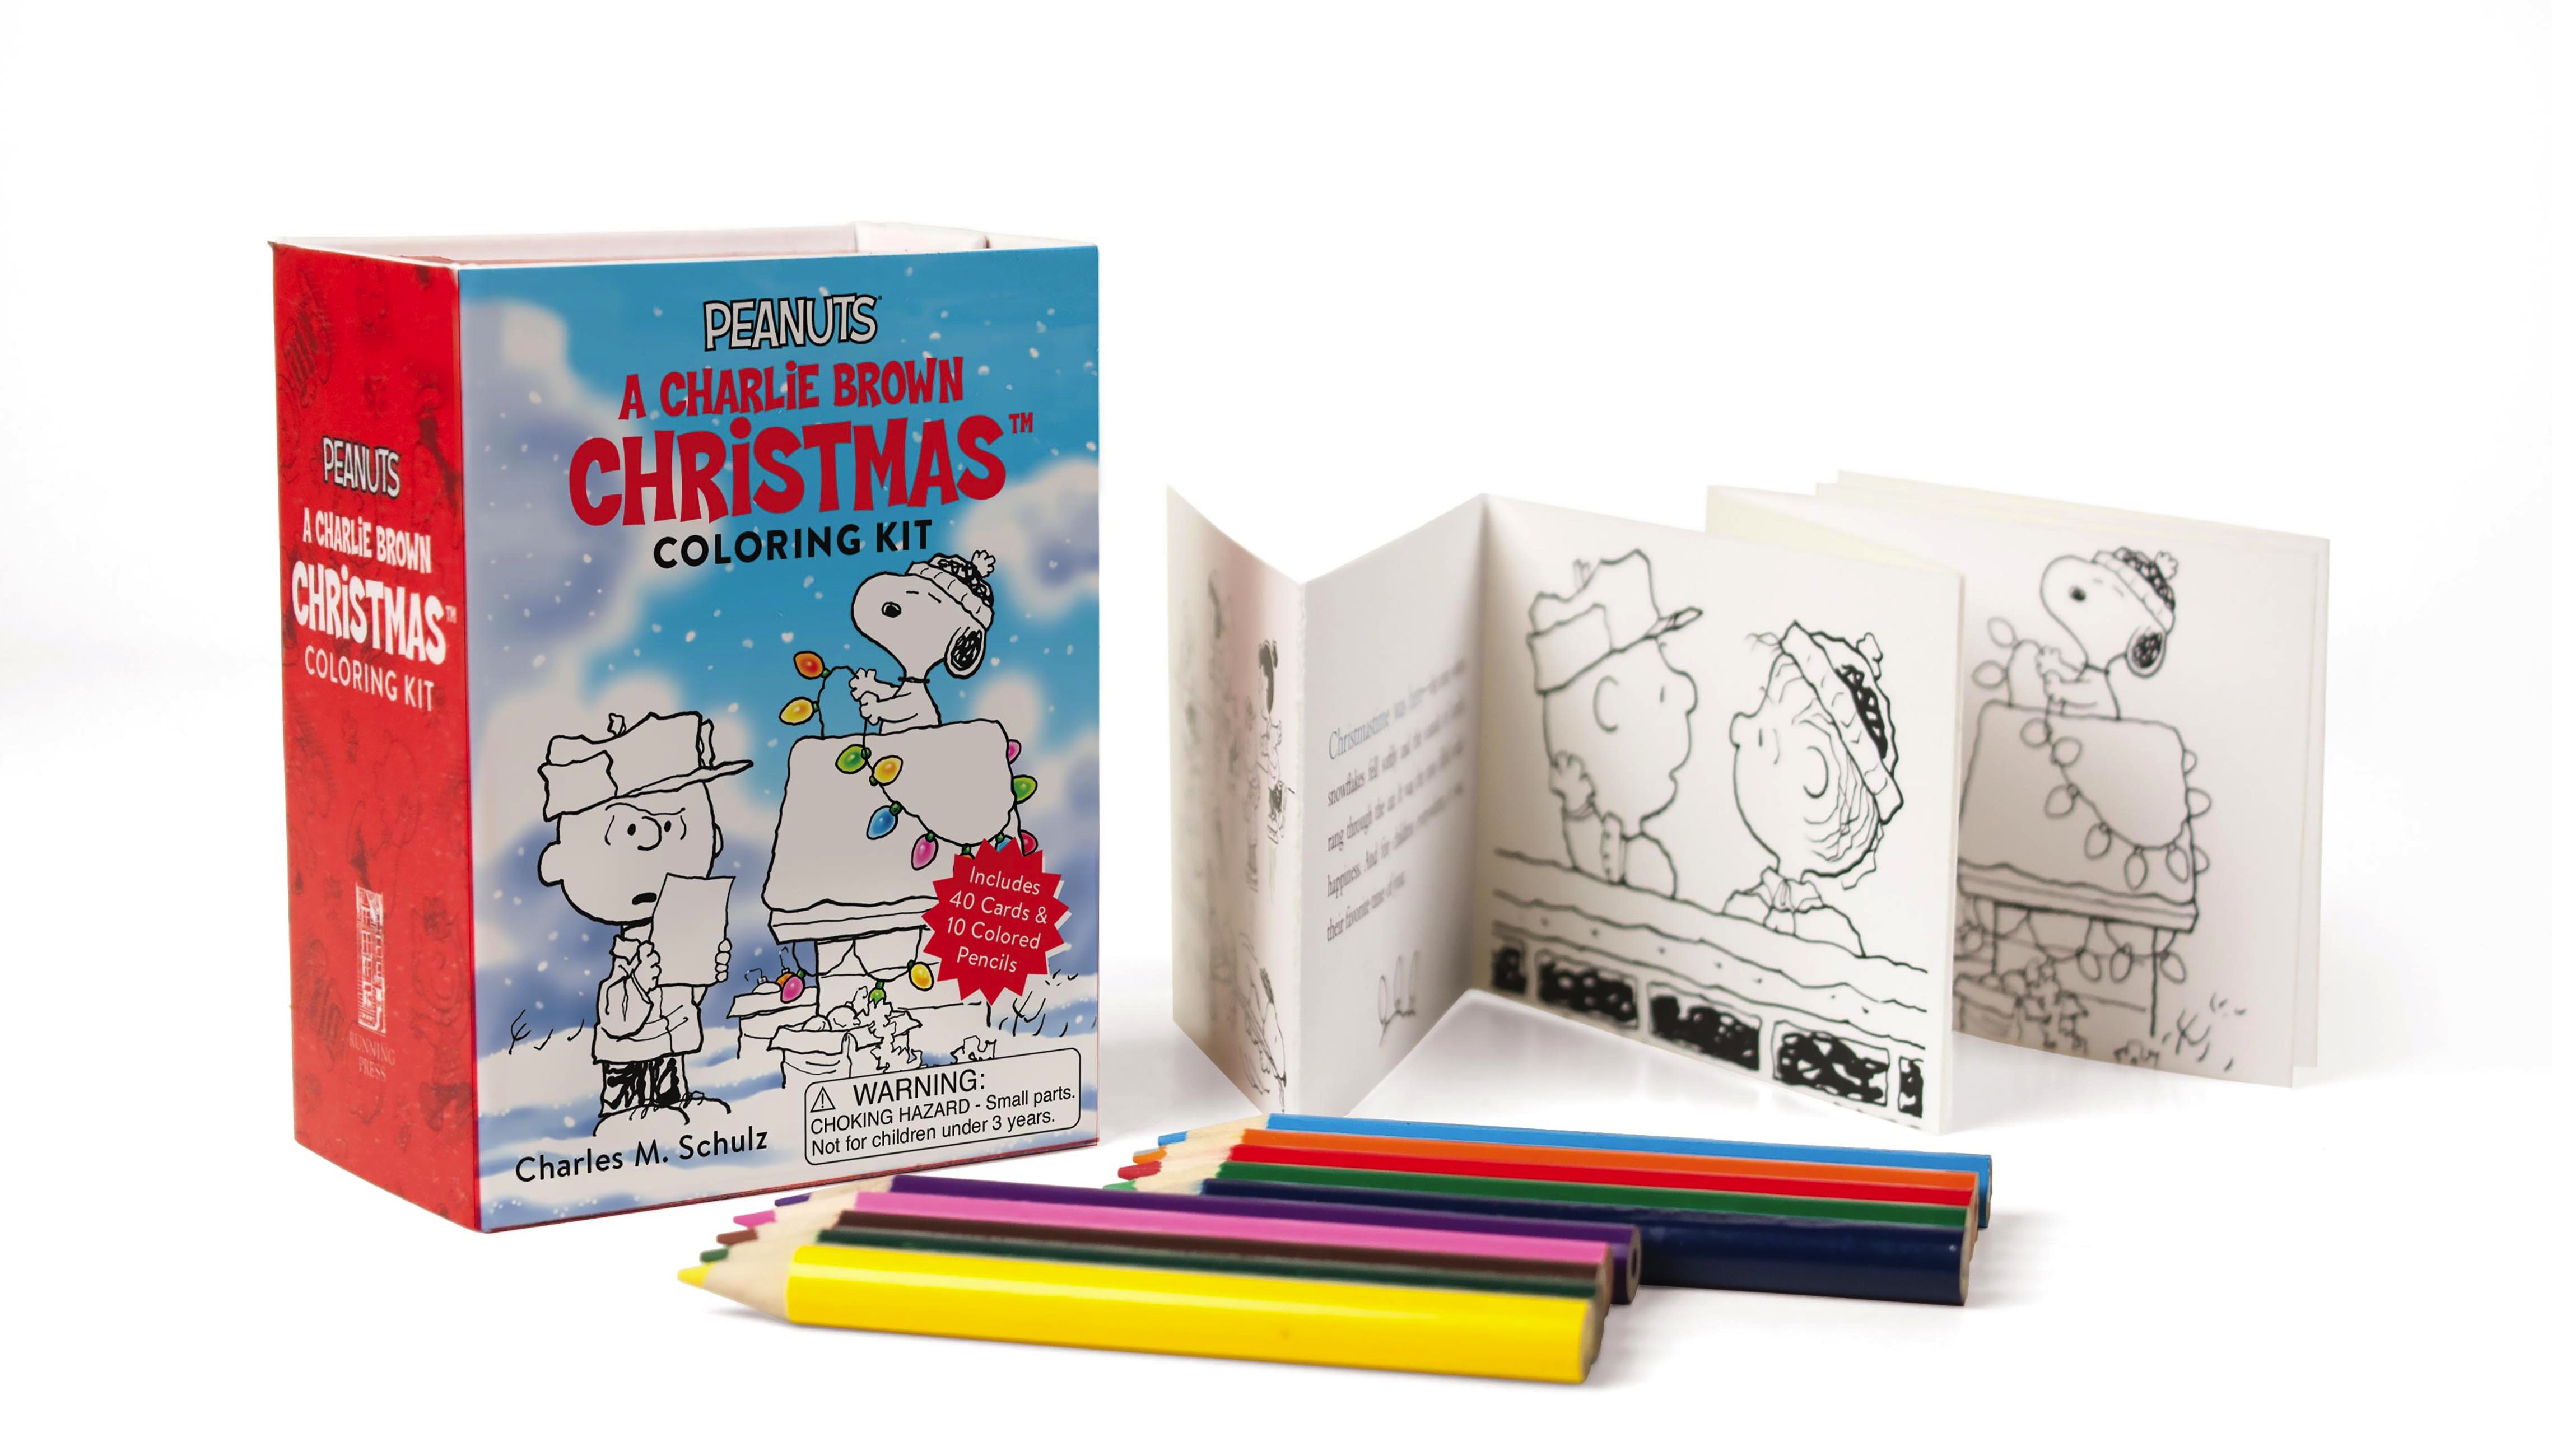 Peanuts A Charlie Brown Christmas Coloring Kit By Charles M Schulz Running Press